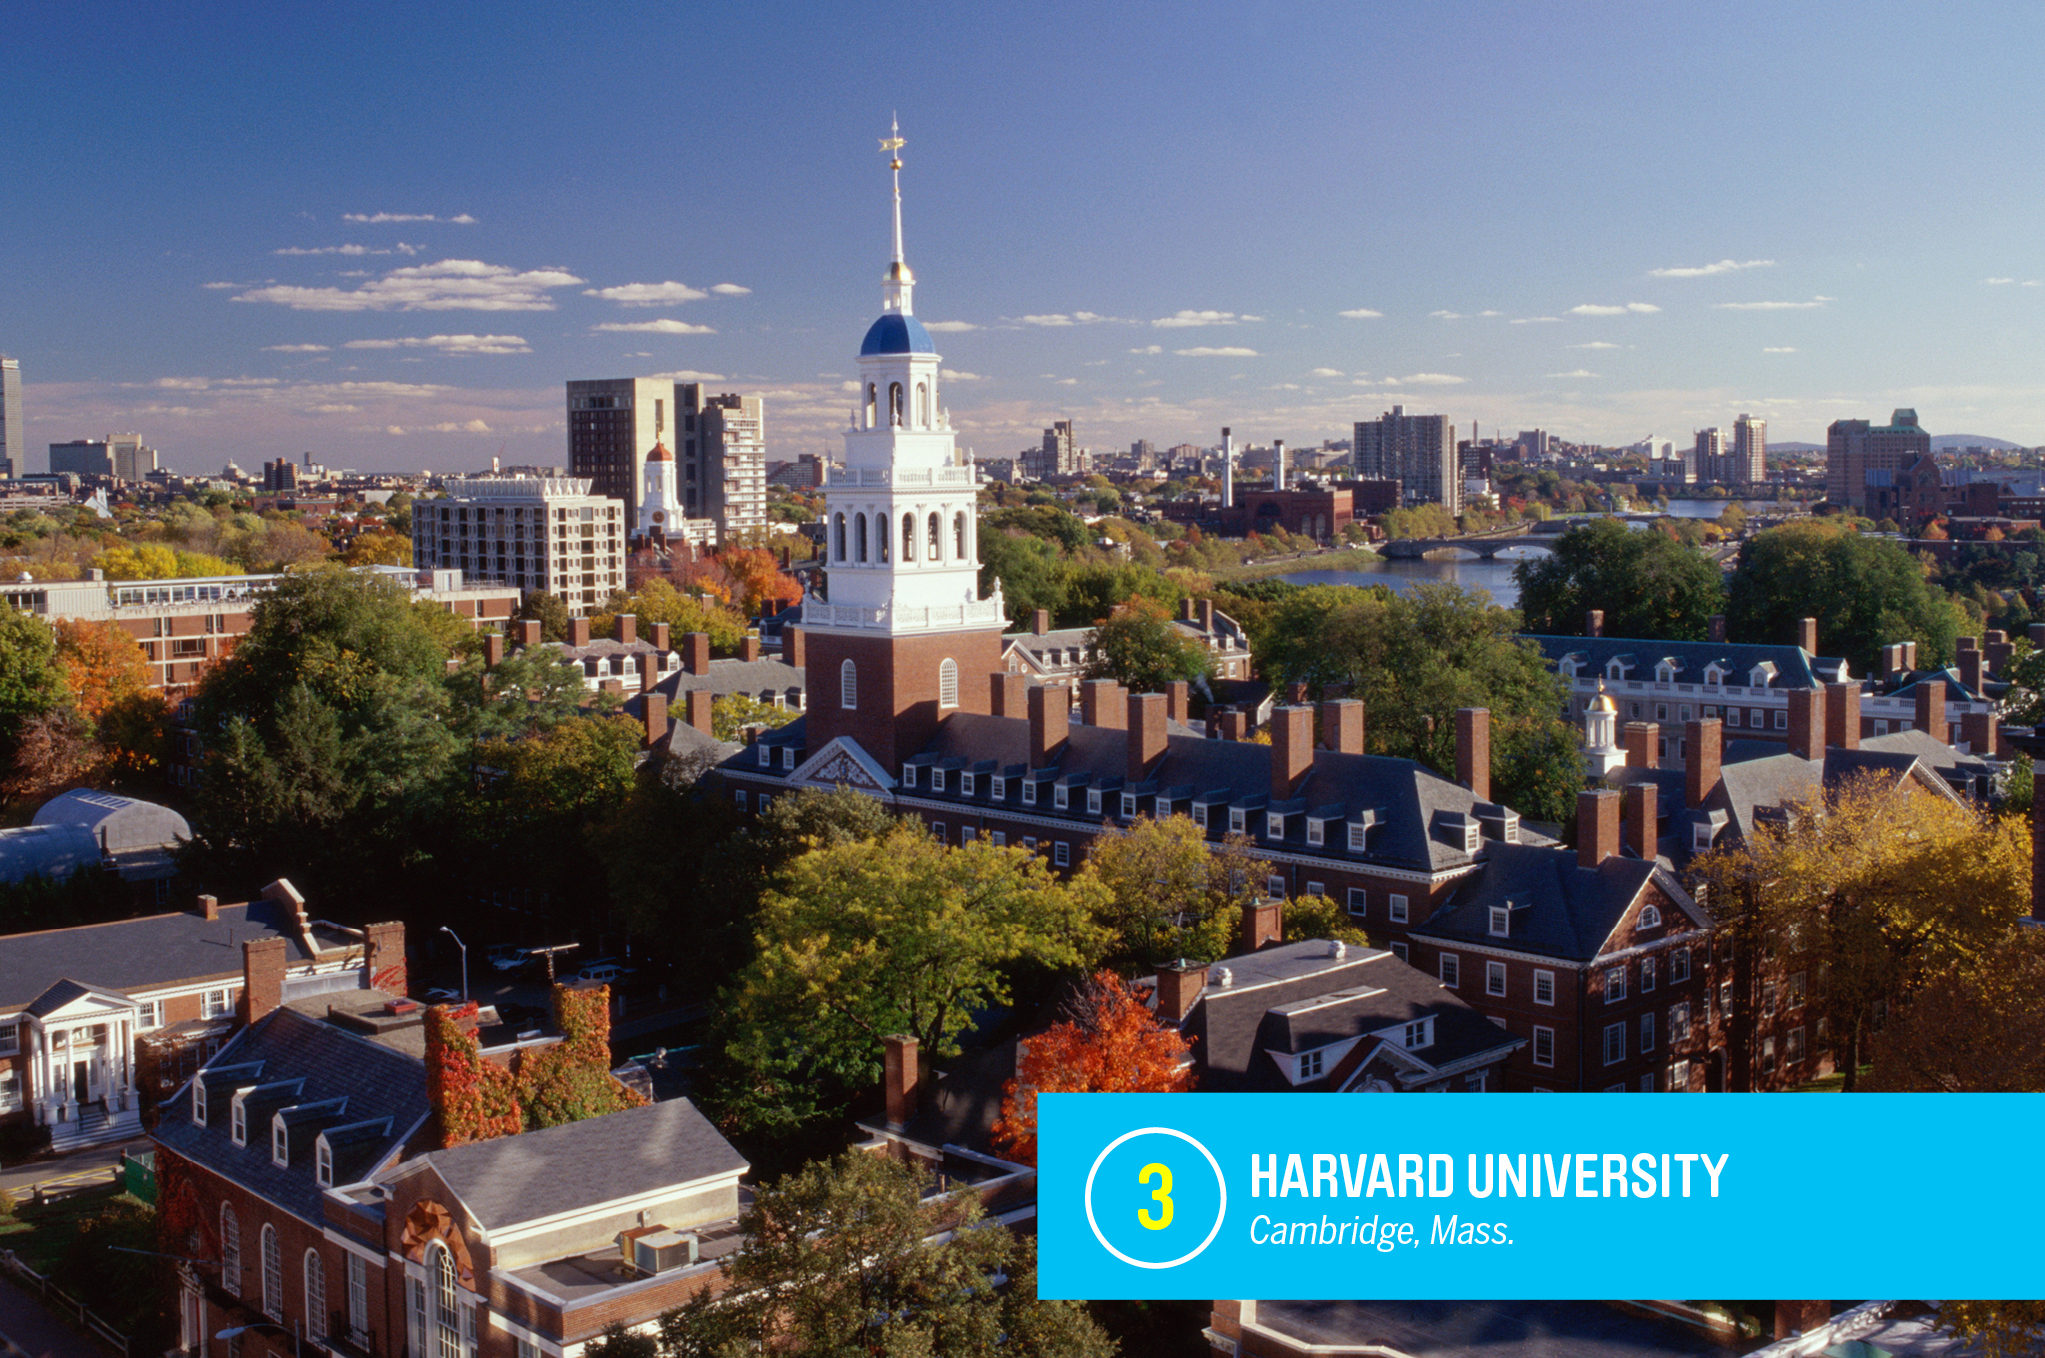 """<a href=""""https://money.com/best-colleges/profile/harvard-university/"""" target=""""_blank"""">Harvard</a> may be the most recognizable college in the world, and it's practically synonymous with the prestigious Ivy League. Like many of its peers, Harvard excels in Money's rankings not only because of the outstanding education it provides but also thanks to its generous financial aid program. <a href=""""https://money.com/best-colleges/profile/harvard-university/"""" target=""""_blank"""">FULL PROFILE</a>"""